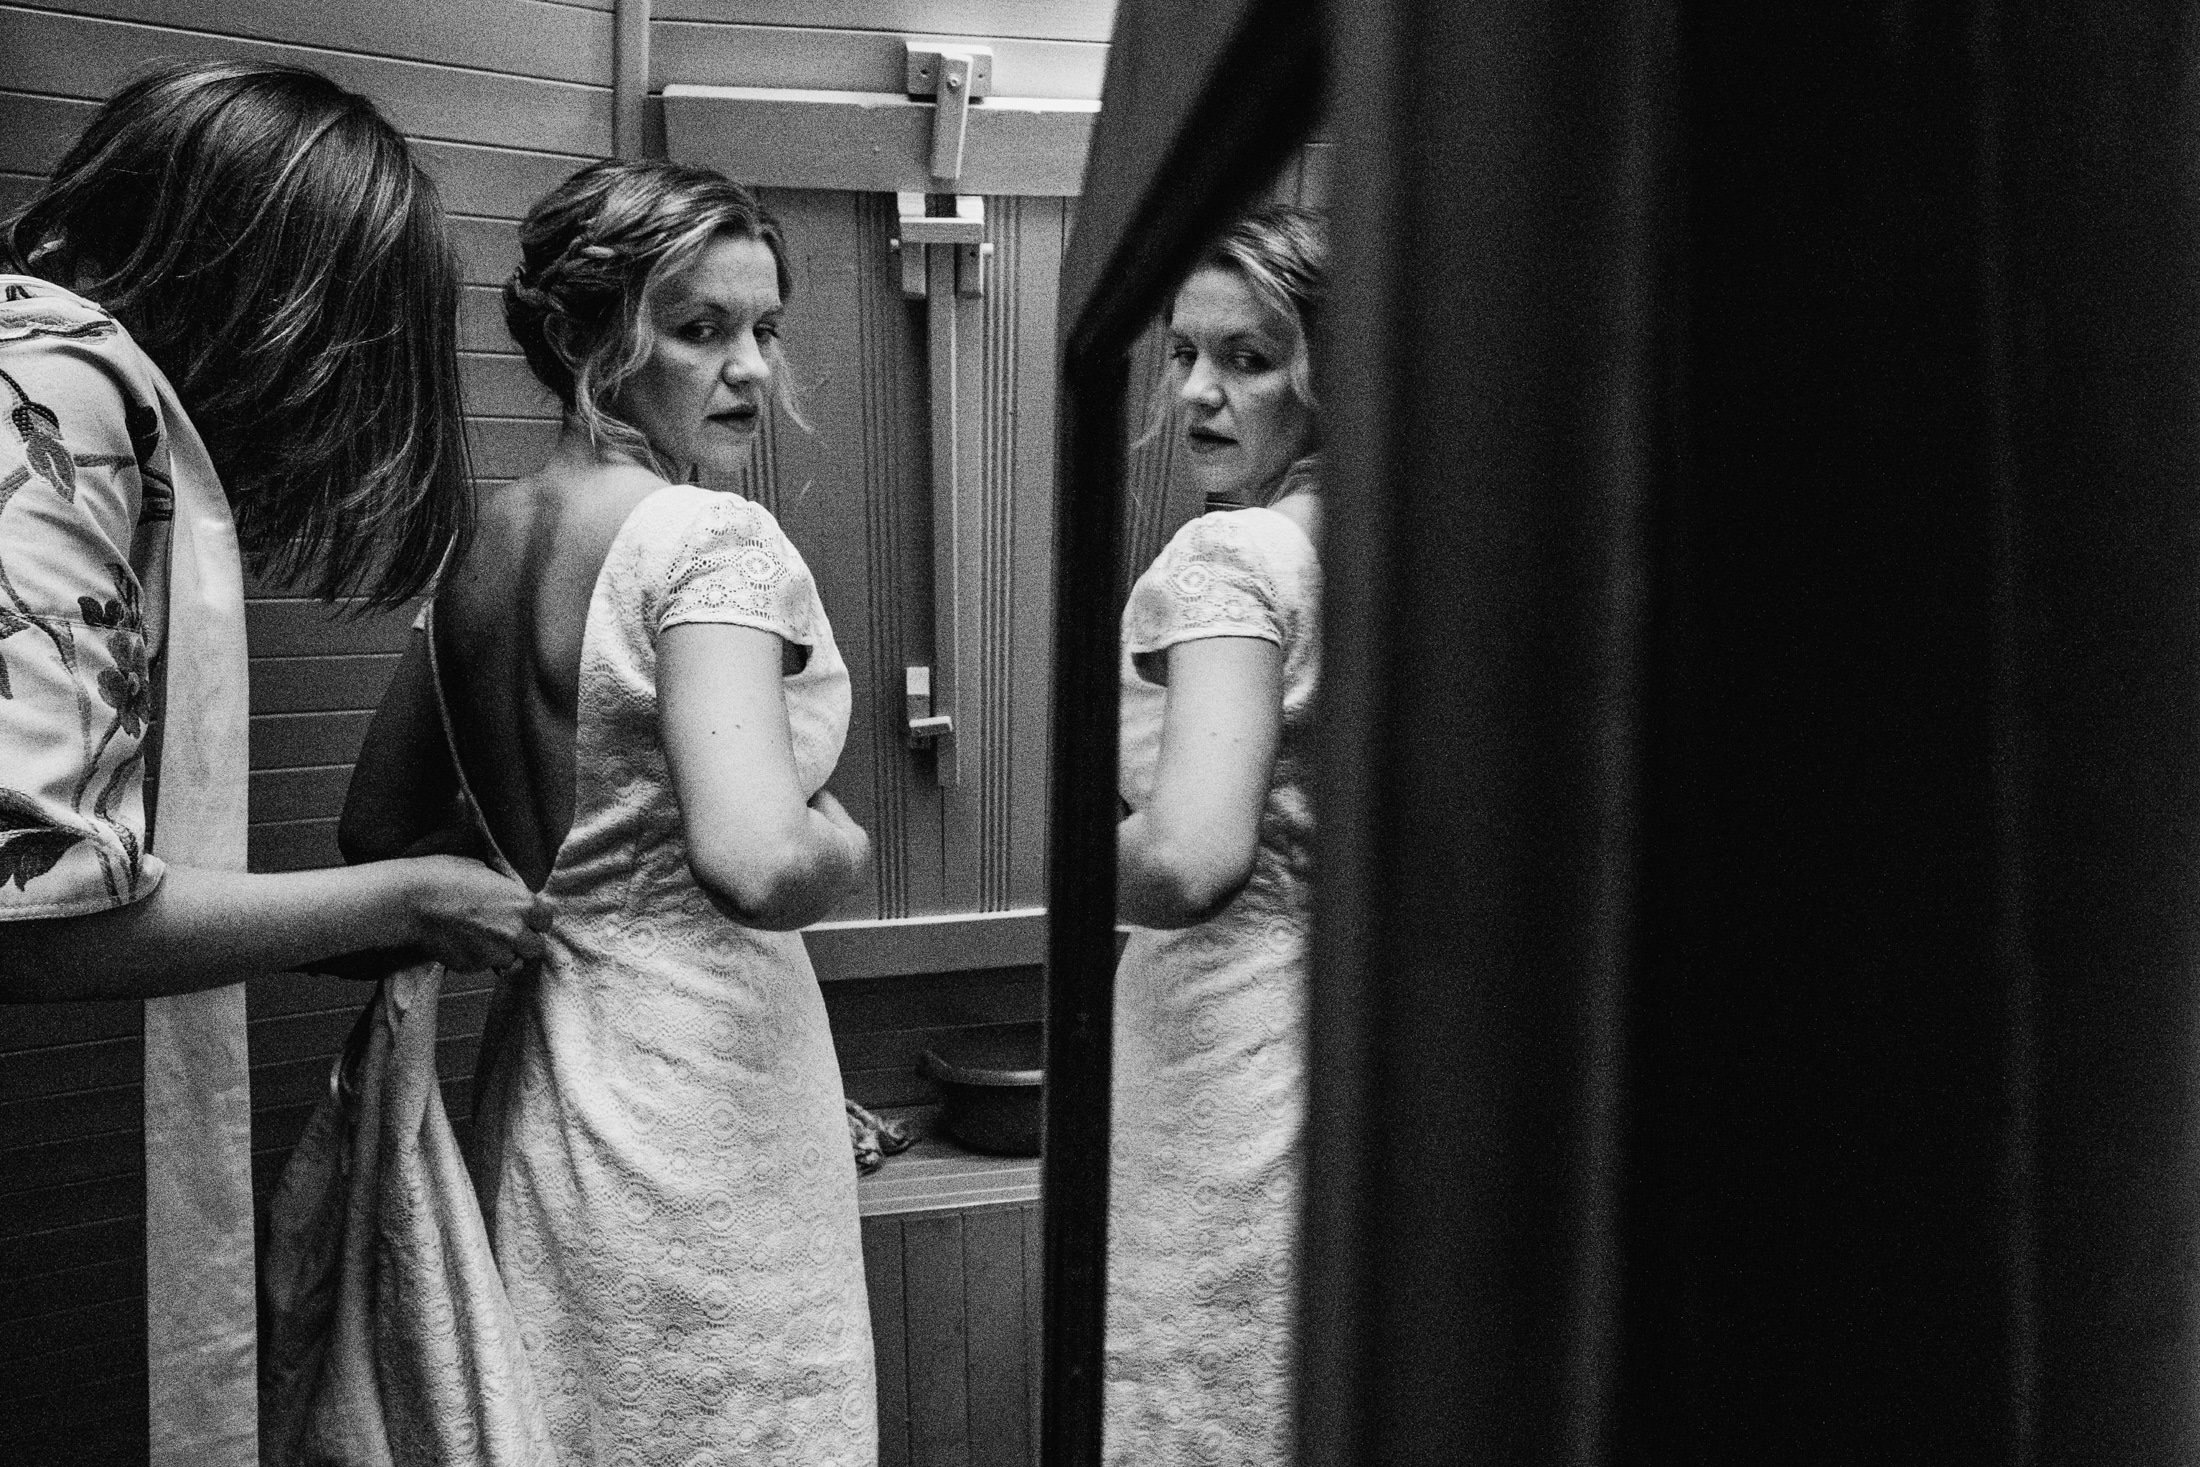 bride getting ready into her dress, reflection in the mirror